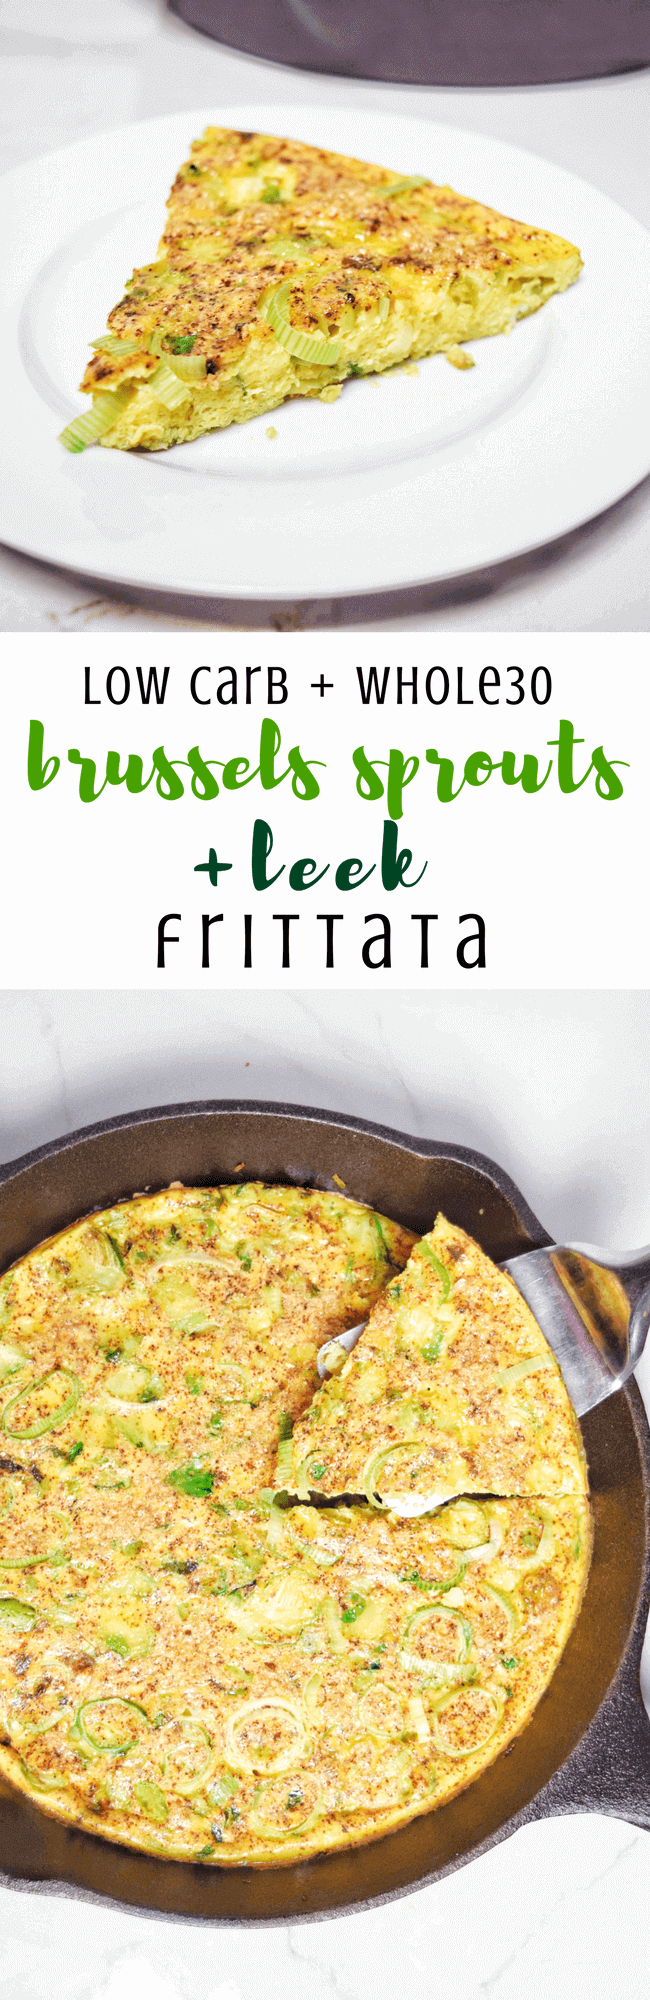 Easy Brussels Sprouts + Leek Frittata (Whole30, Low Carb) | Personally Paleo